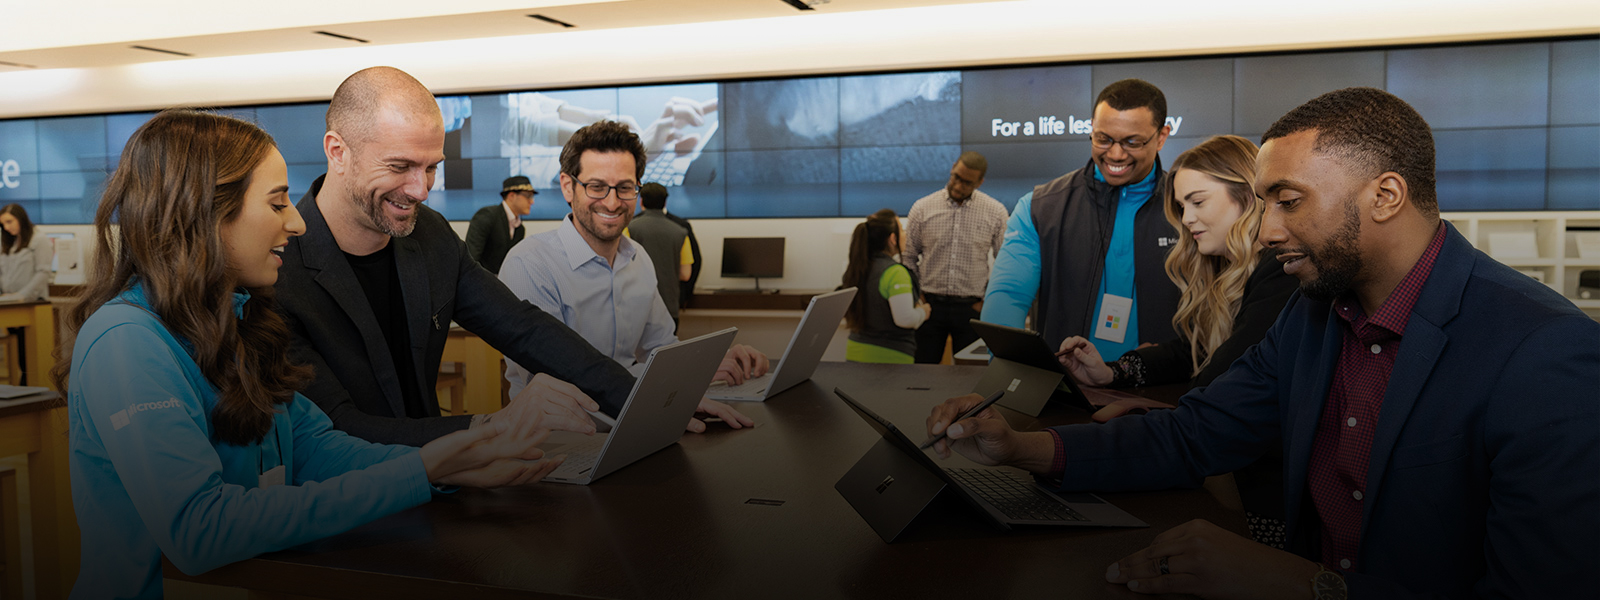 Microsoft Store business training event with various business professionals.